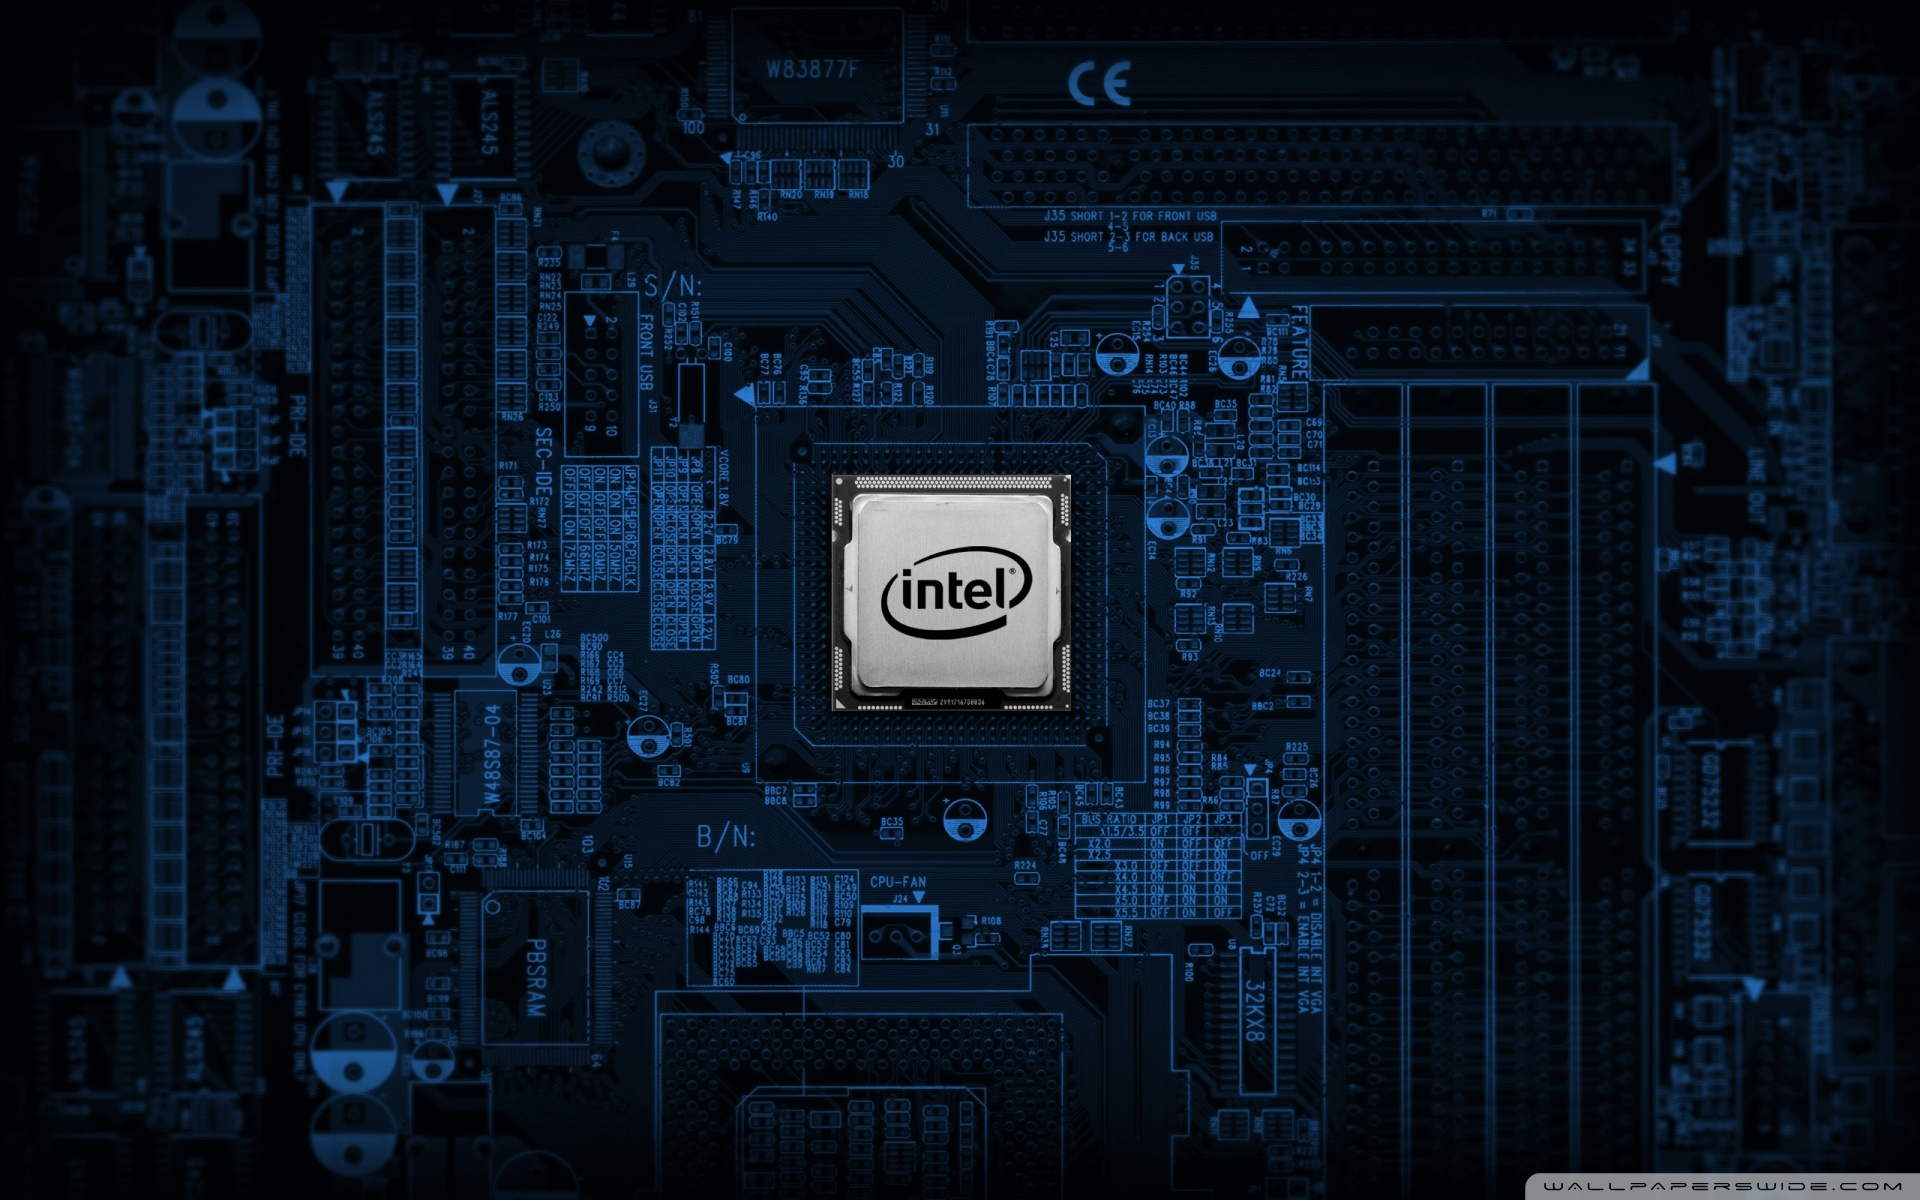 Intel Motherboard 4K HD Desktop Wallpaper for 4K Ultra HD TV 1920x1200